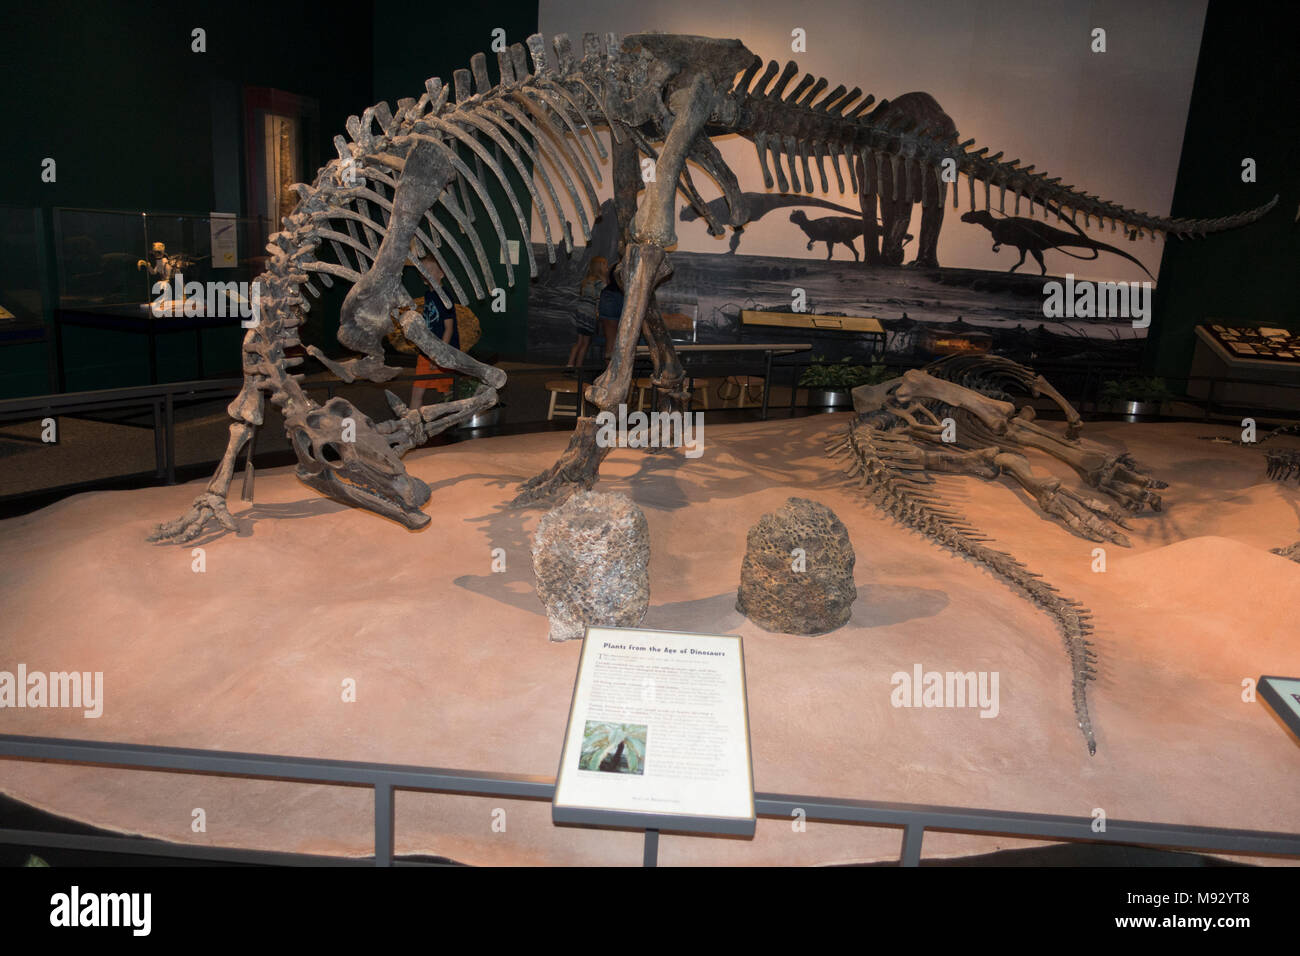 Camptosaurus a plant-eating, beaked ornithischian dinosaur of the Late Jurassic period Science Museum of Minnesota exhibit. St Paul Minnesota MN USA Stock Photo